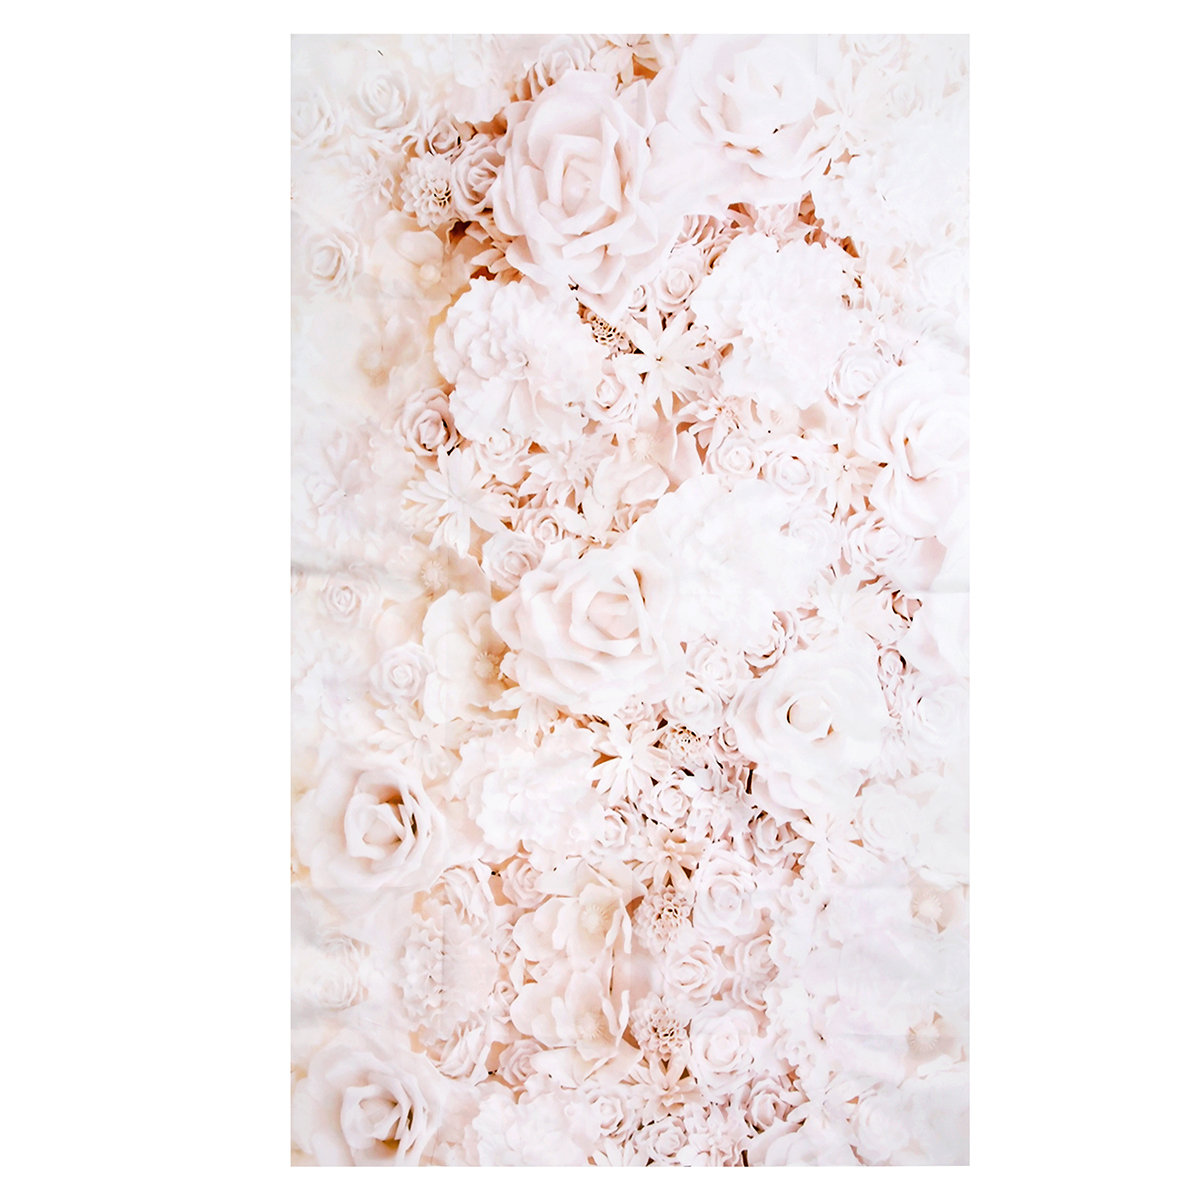 3x5ft Rose Flowers Photography Backgrounds Vinyl Studio Photo Backdrops